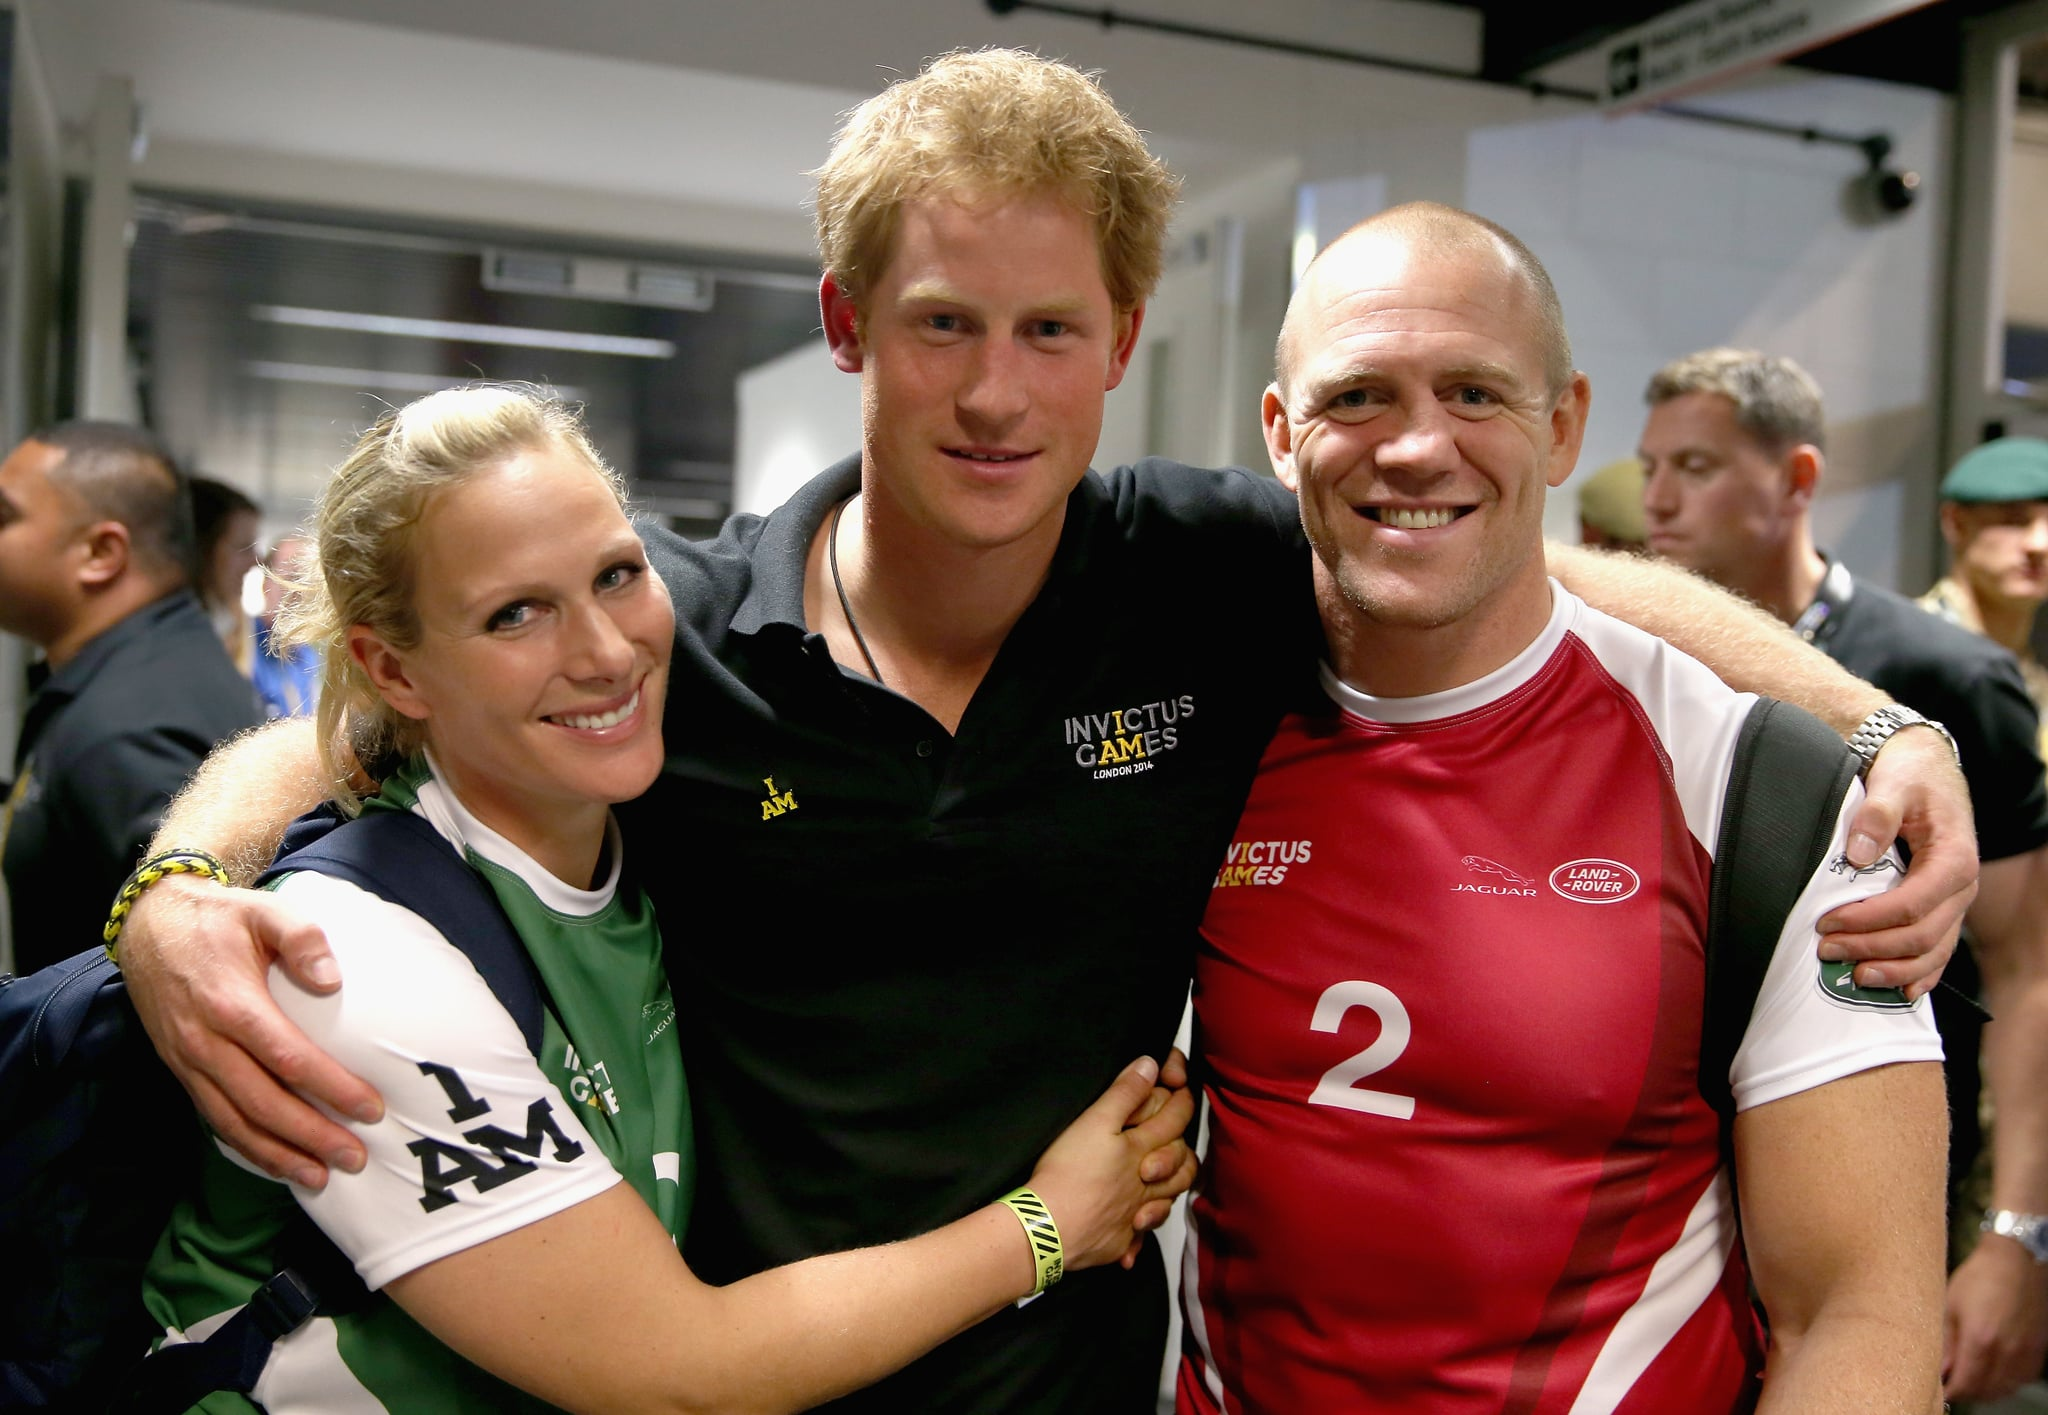 LONDON, ENGLAND - SEPTEMBER 12:  Prince Harry, Zara Phillips and Mike Tindall pose for a photograph after competing in an Exhibition wheelchair rugby match at the Copper Box ahead of tonight's exhibition match as part of the Invictus Games at Queen Elizabeth park on September 12, 2014 in London, England. The International sports event for 'wounded warriors', presented by Jaguar Land Rover, is just days away with limited last-minute tickets available at www.invictusgames.org  (Photo by Chris Jackson/Getty Images)